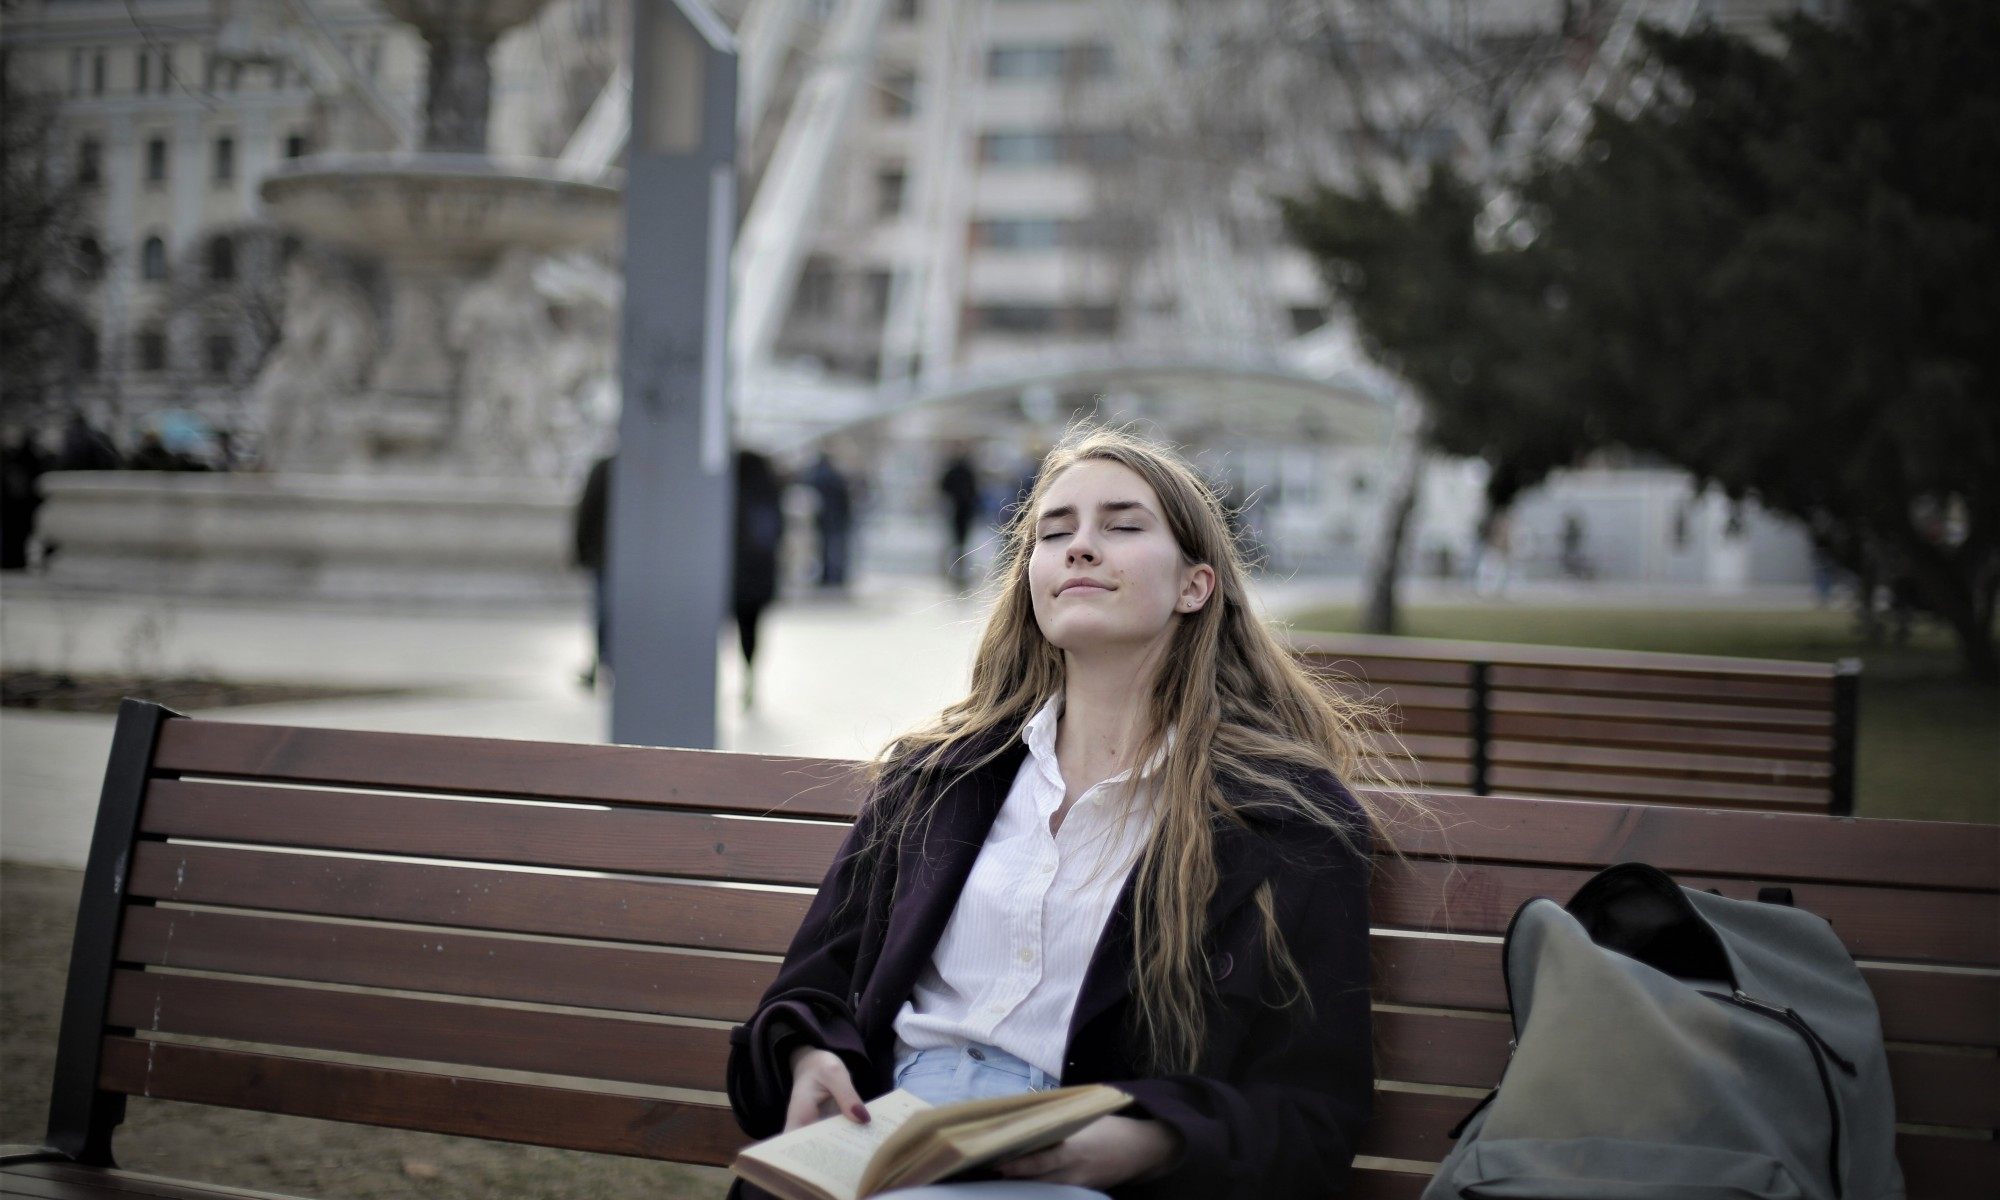 Woman relaxing on a park bench holding a book and breathing in Spring air